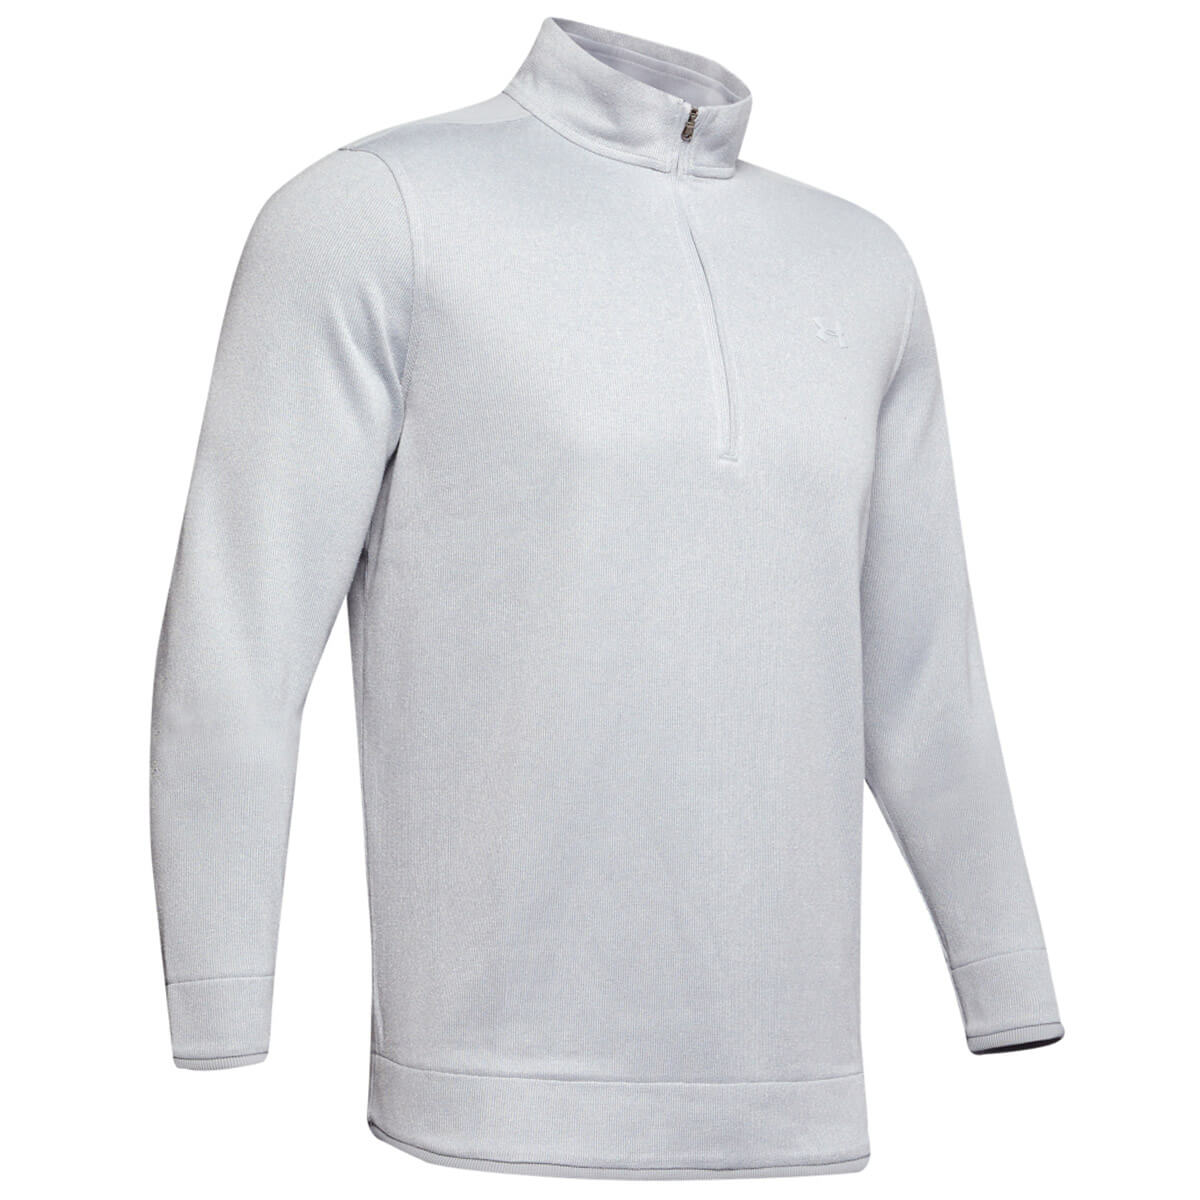 Under-Armour-Homme-UA-sweaterfleece-1-2-zip-resistant-a-l-039-eau-Pullover-40-OFF-RRP miniature 27